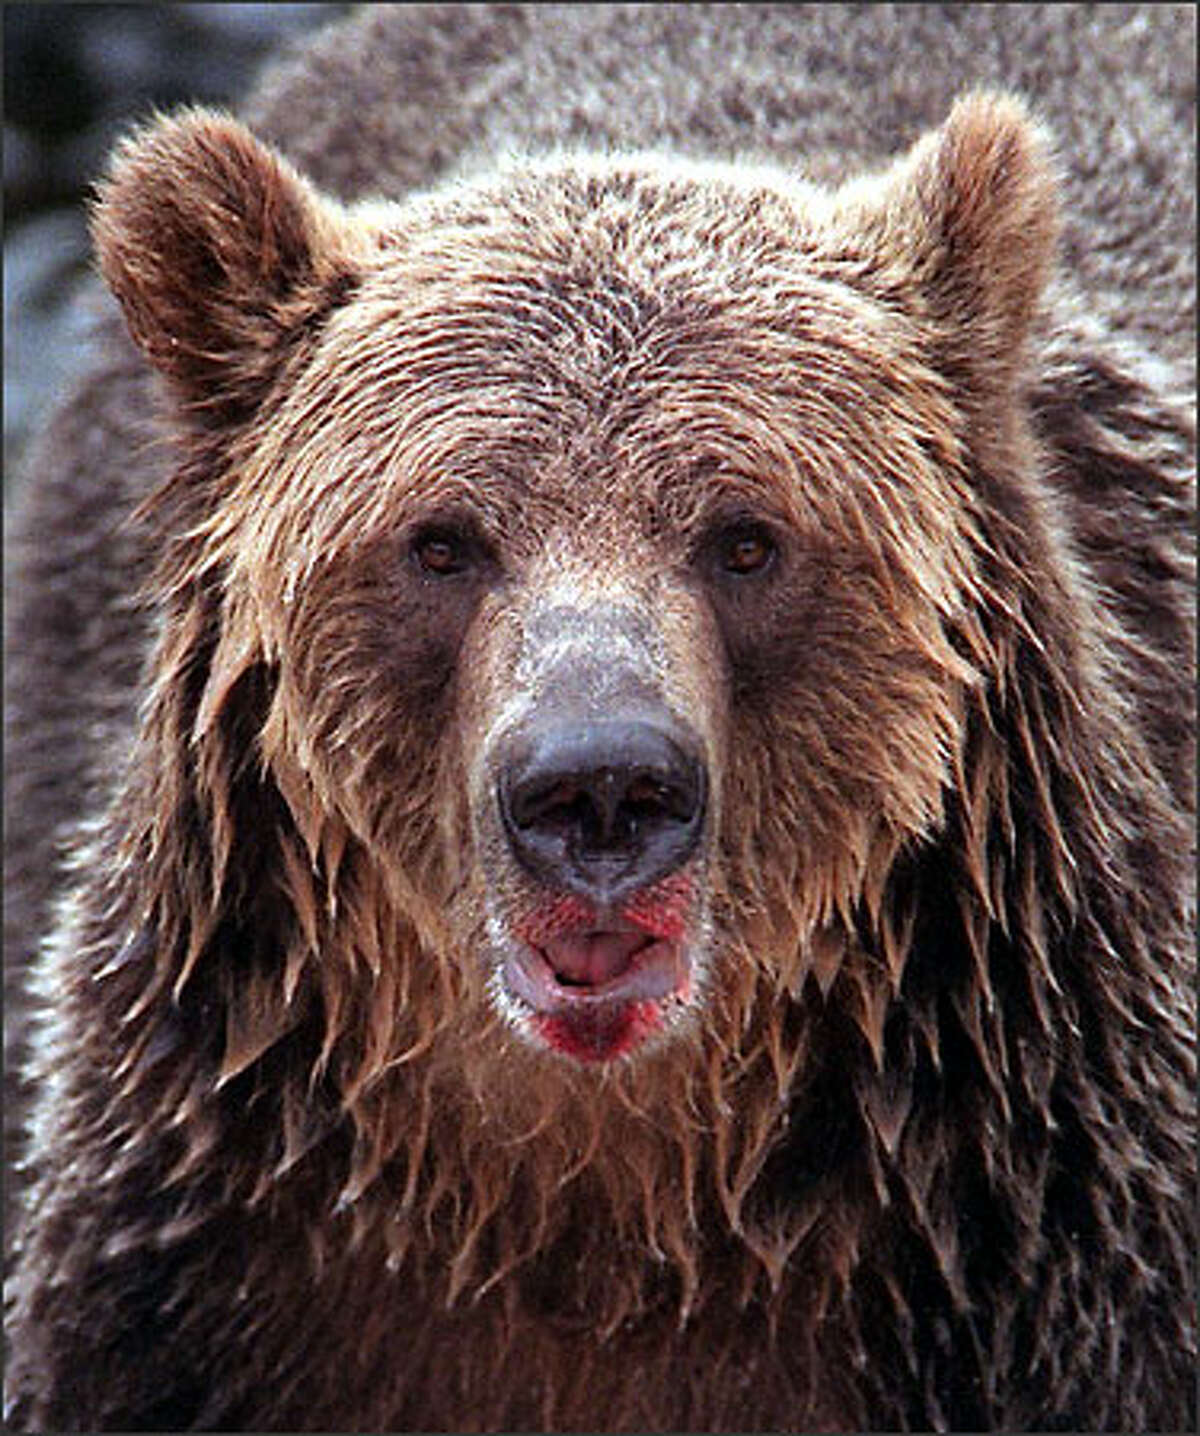 This grizzly bear is from British Columbia.